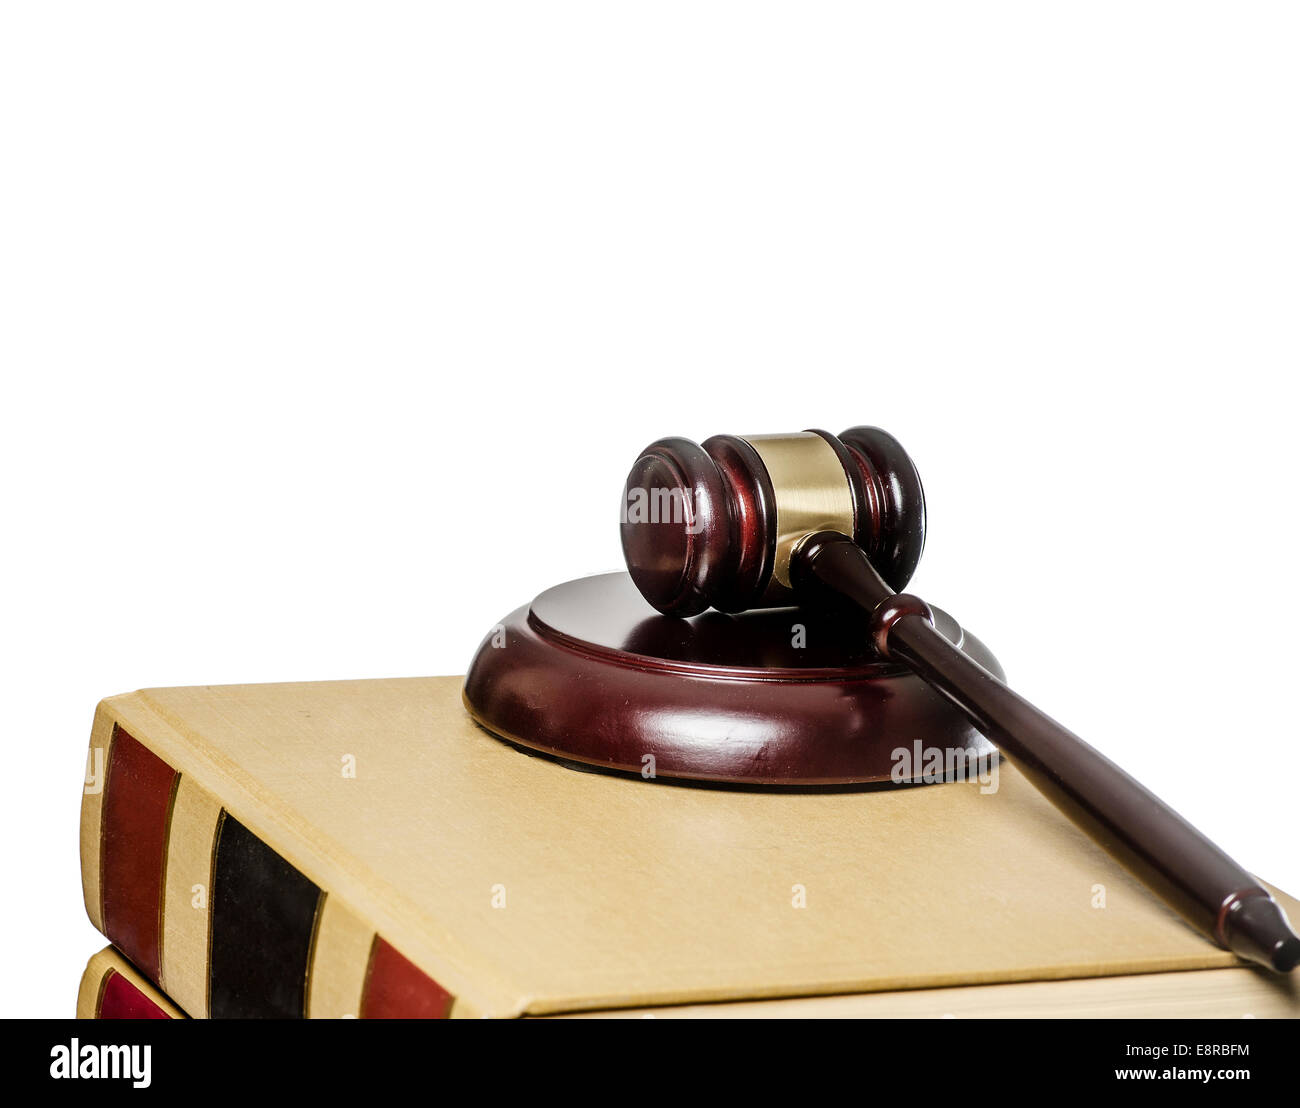 Legal,law concept image - wood gavel on books, - Stock Image